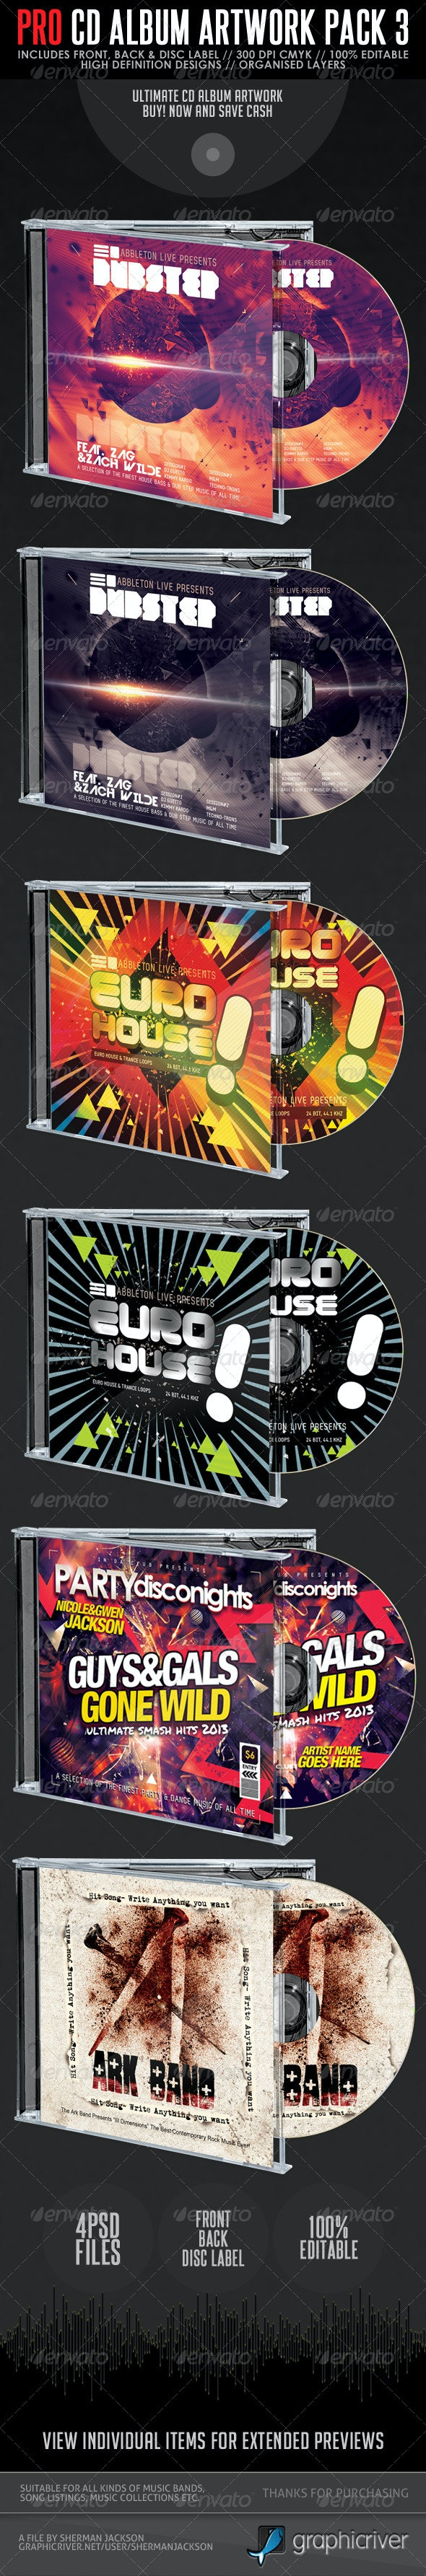 Pro CD Artwork Bundle Package V.3 - CD & DVD Artwork Print Templates